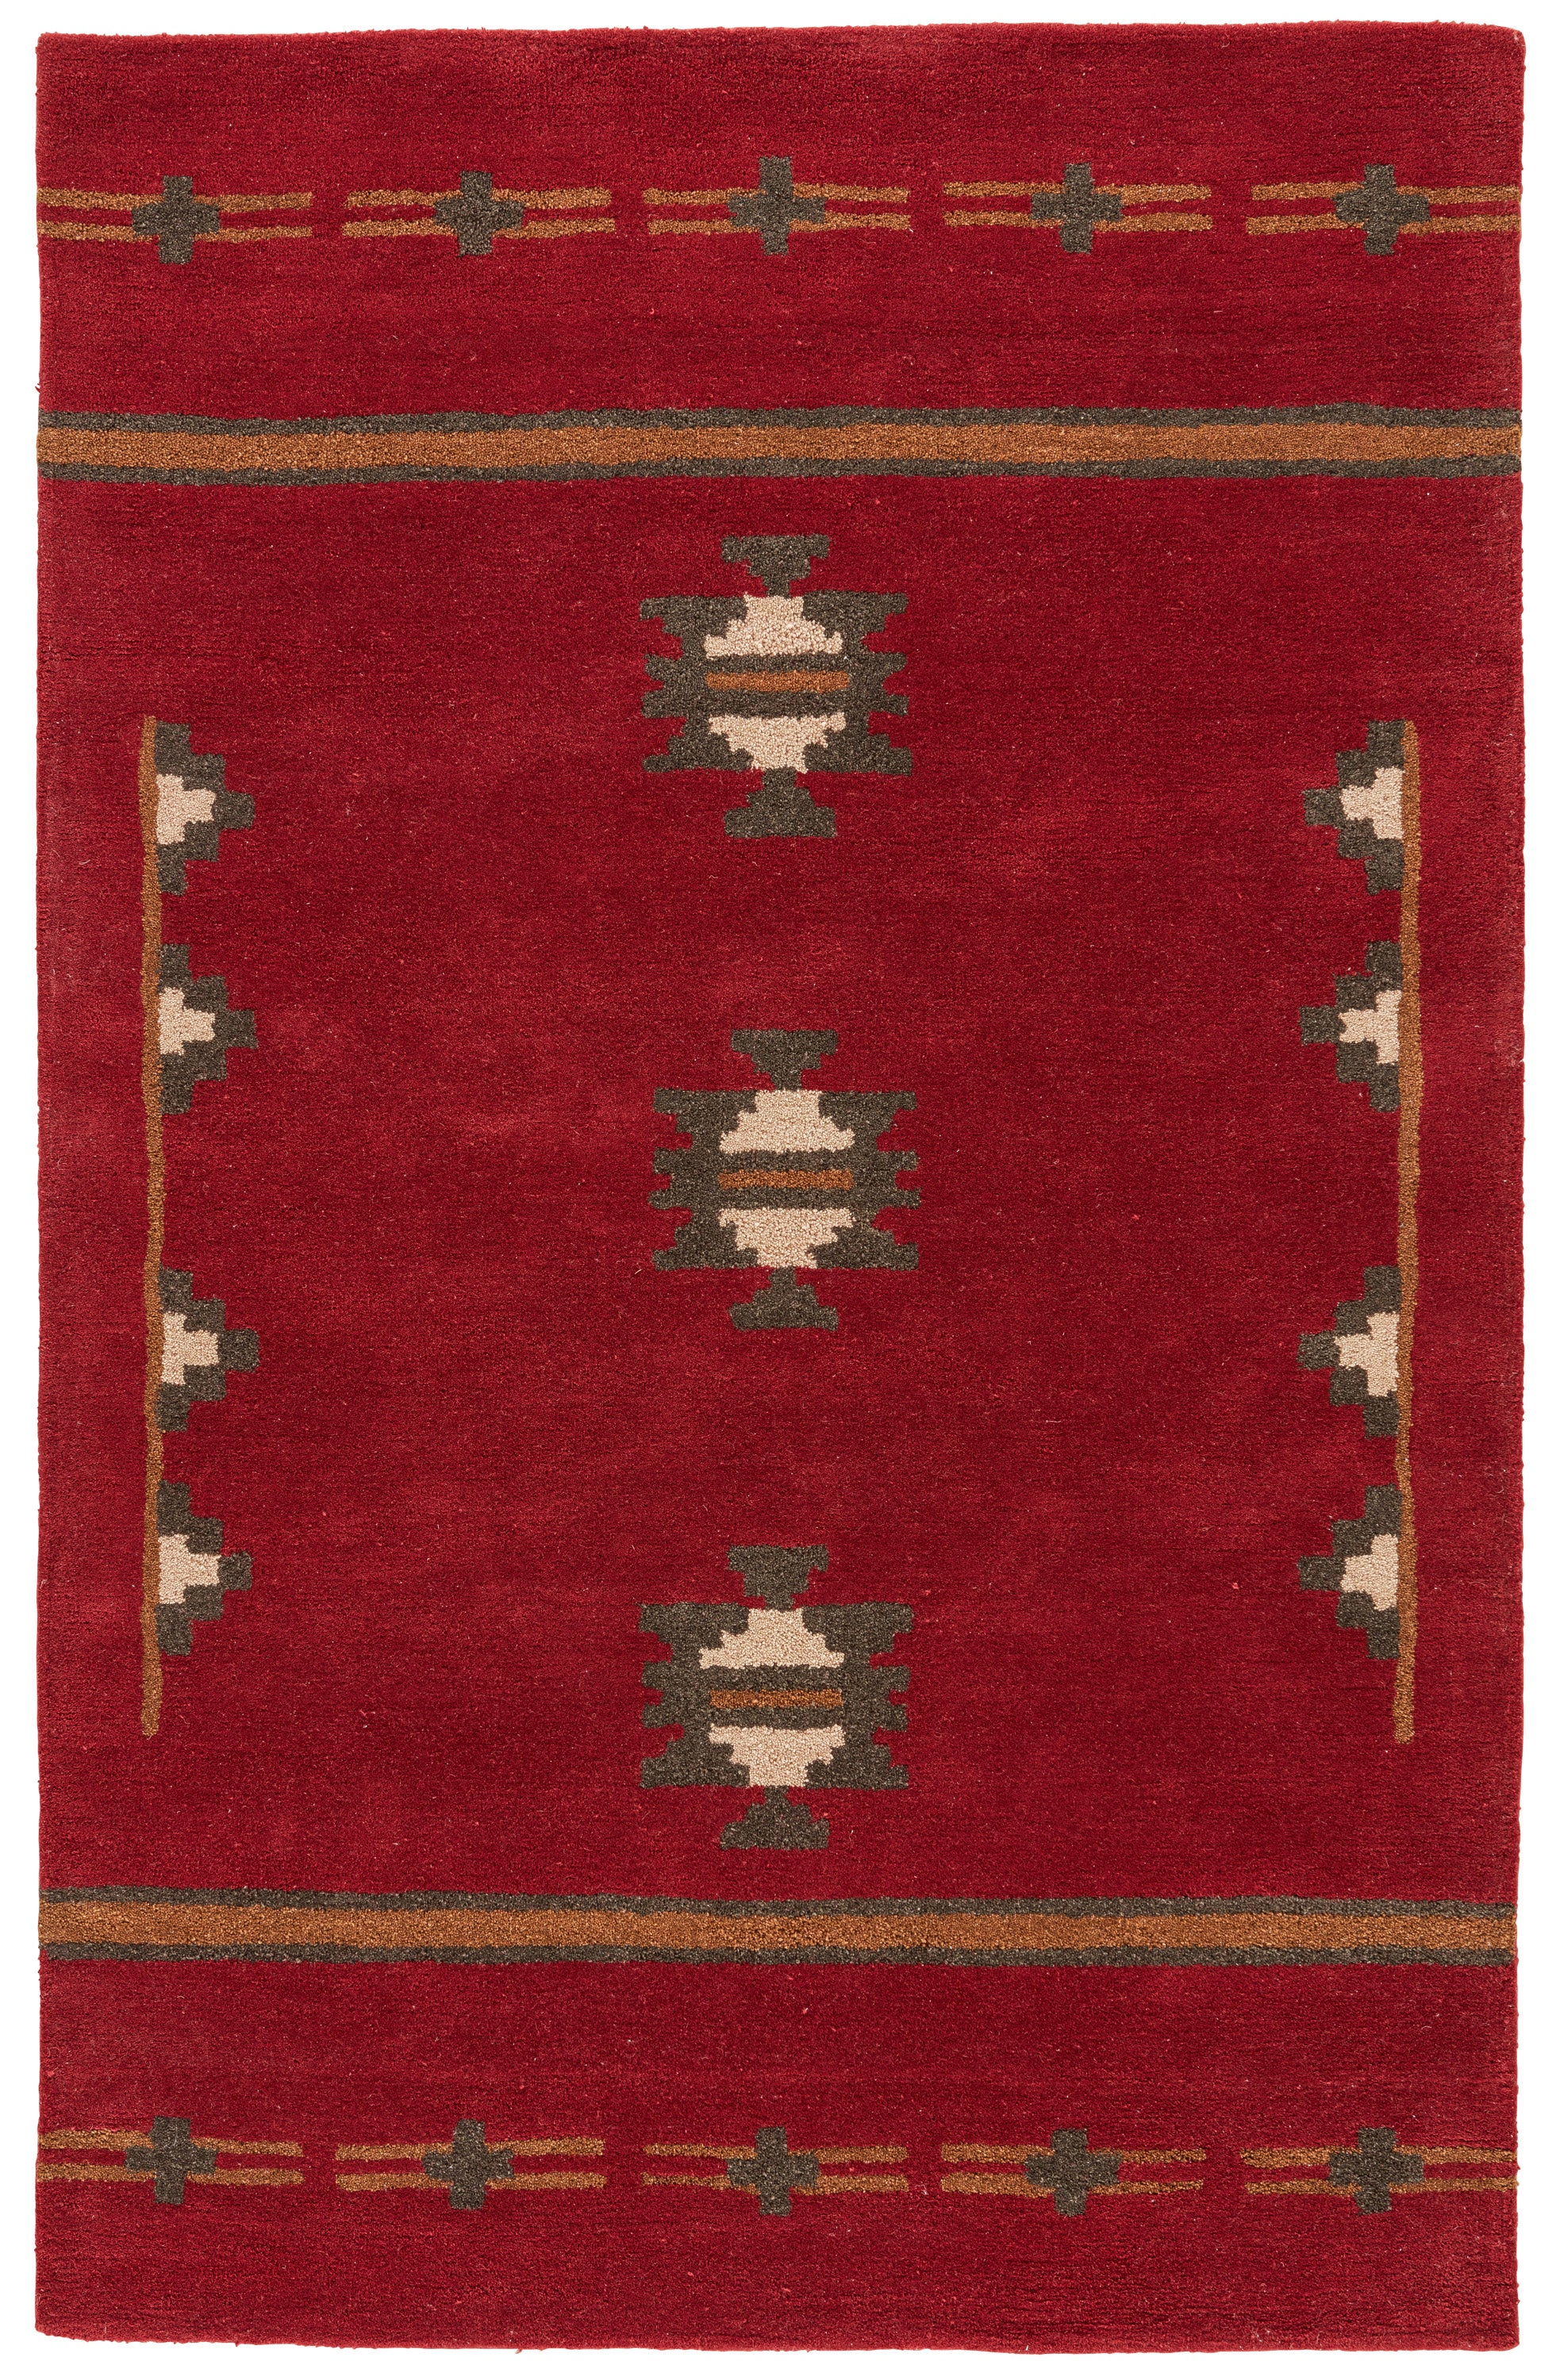 Rectangle 5x8 Red Medallion Hand Tufted Wool Southwestern recommended for Bedroom, Bathroom, Dining Room, Office, Hallway, Living Room